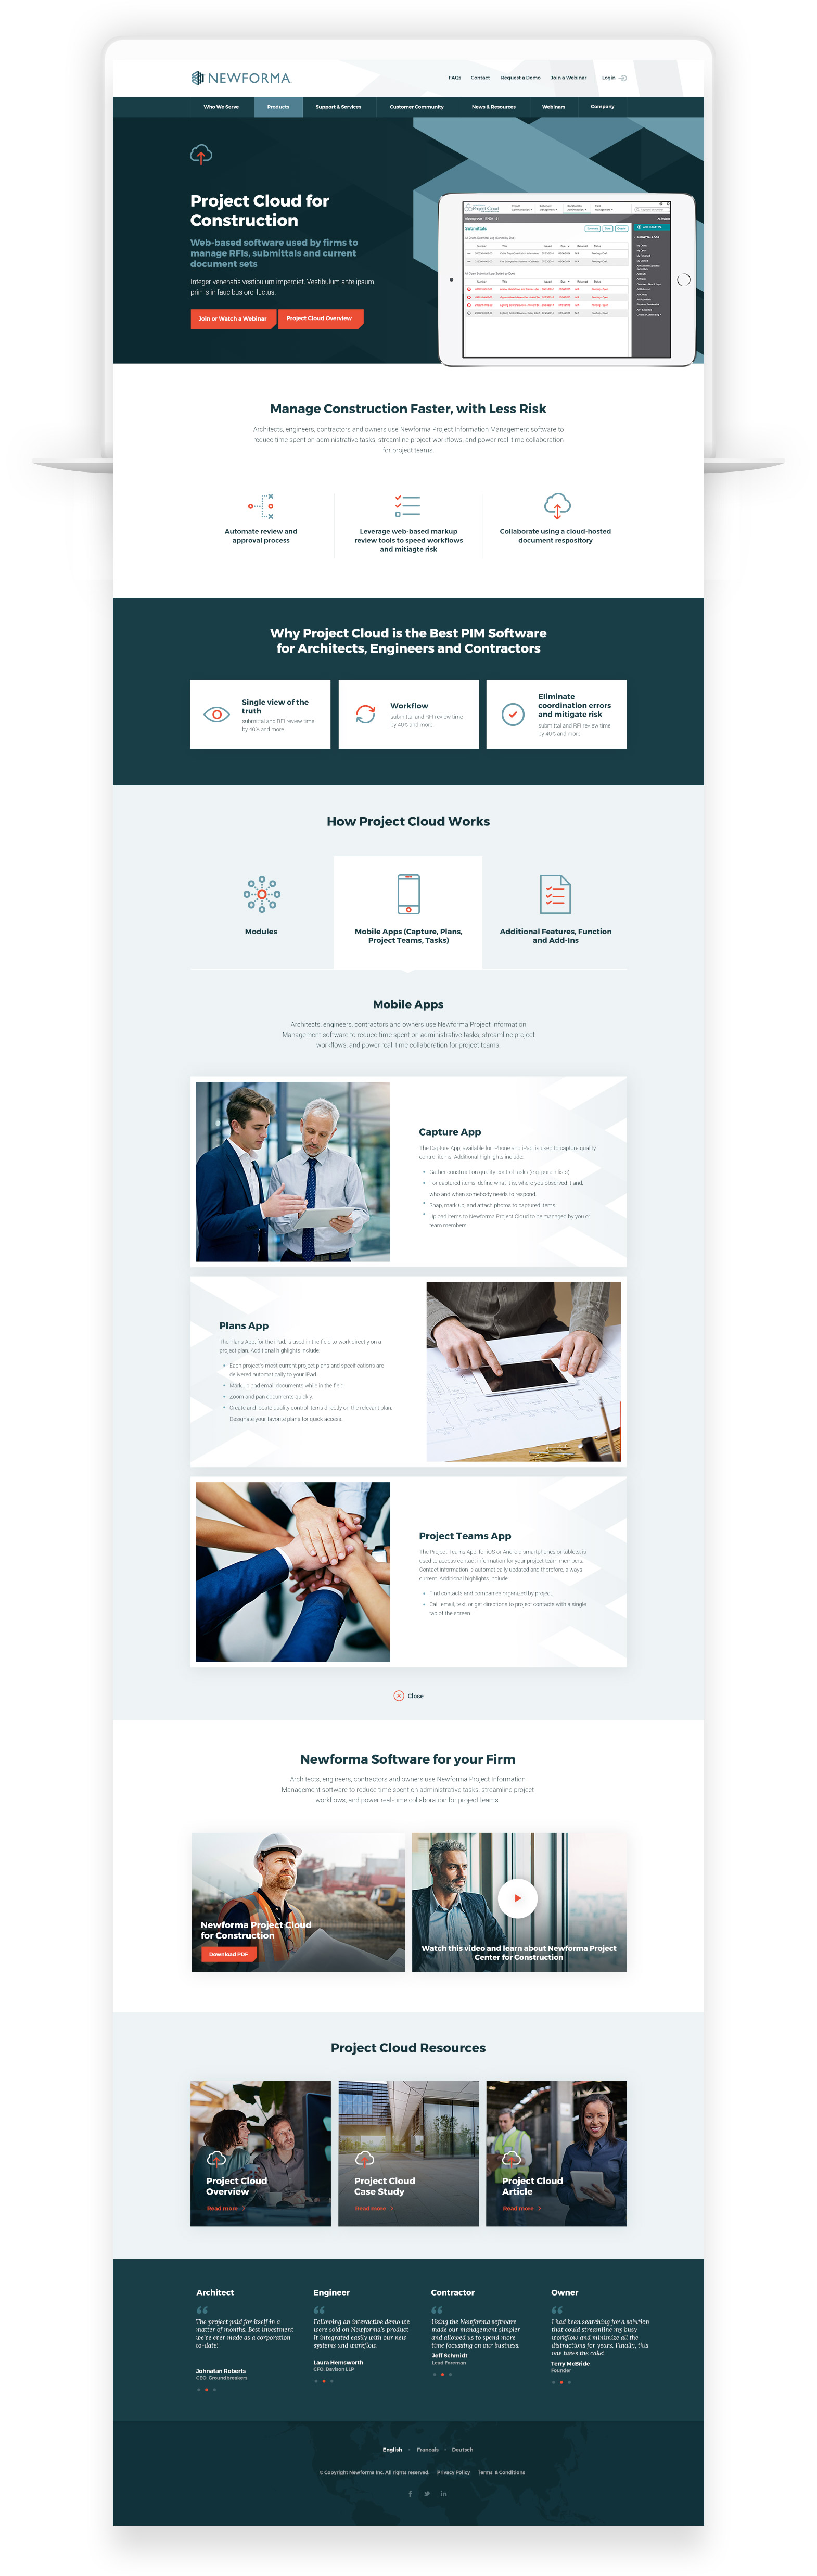 Web Design for Software Company - Newforma